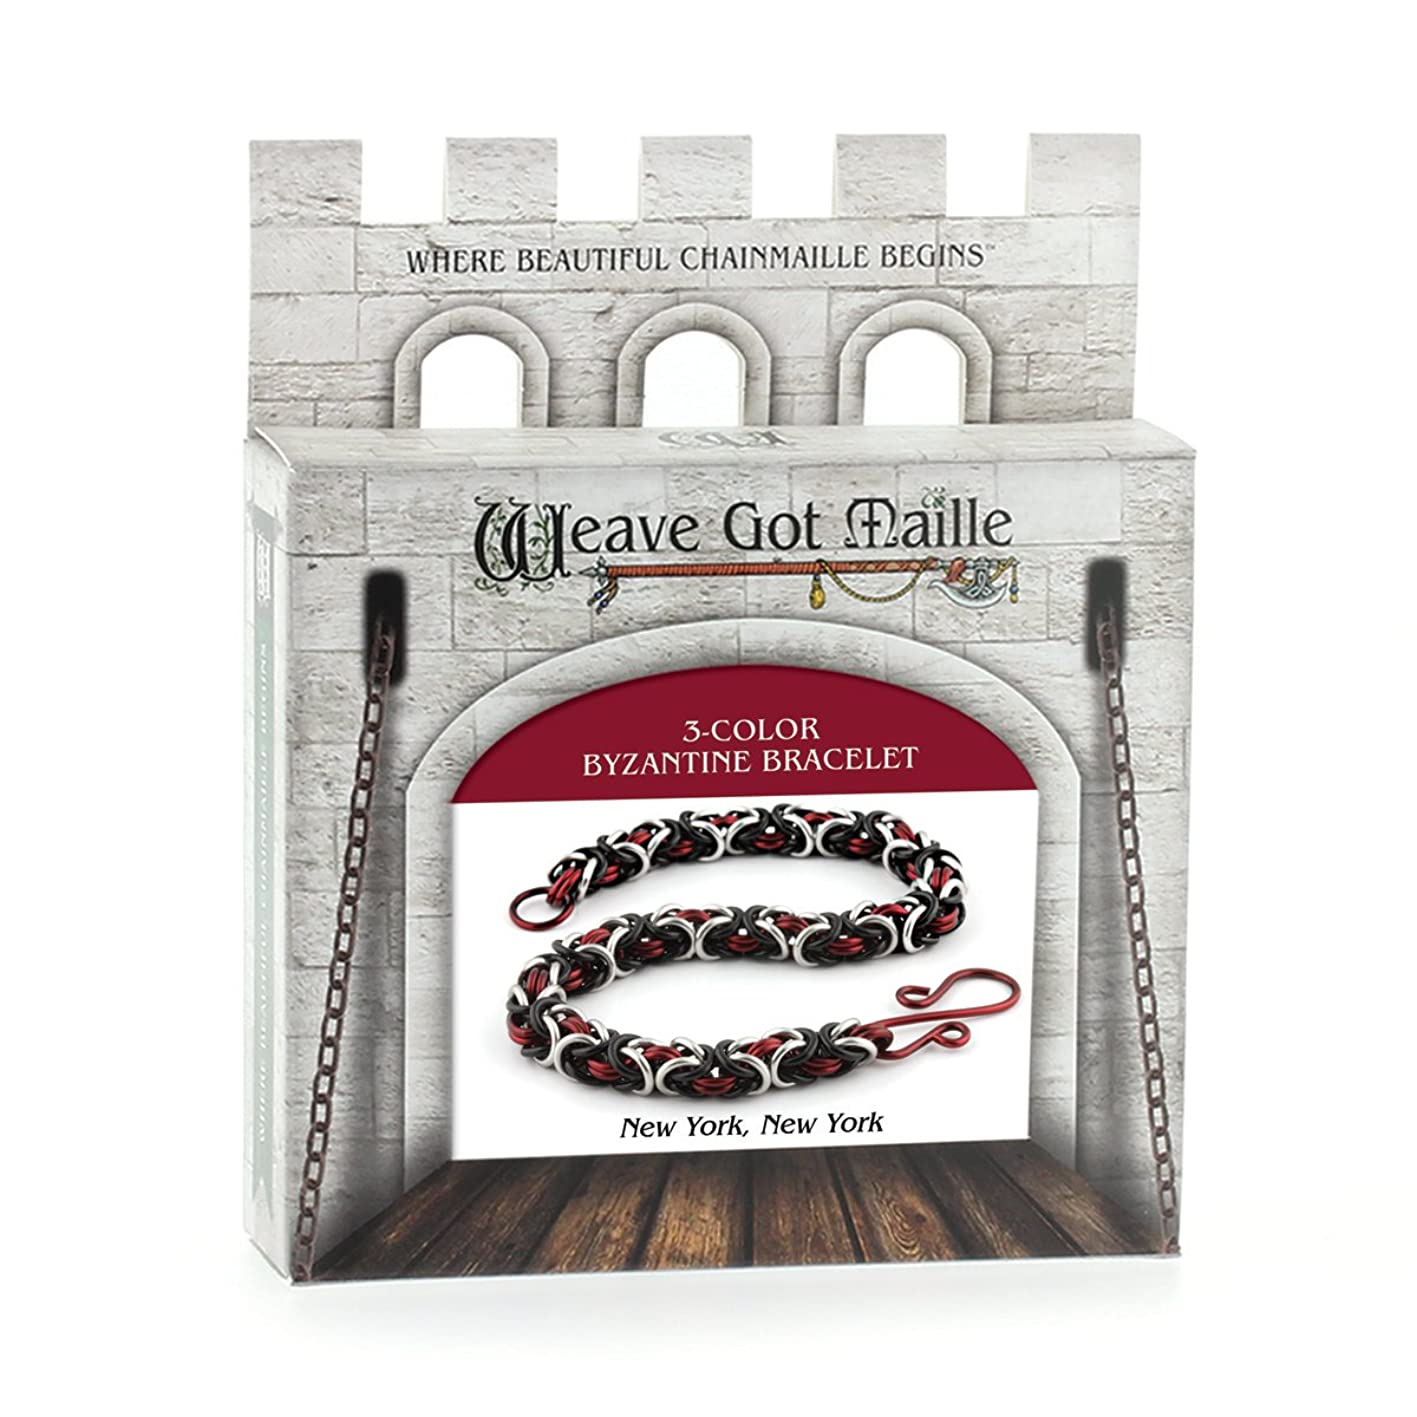 Weave Got Maille 3-Color Byzantine Chain Maille Bracelet Kit, New York New York blqgktkirsp065